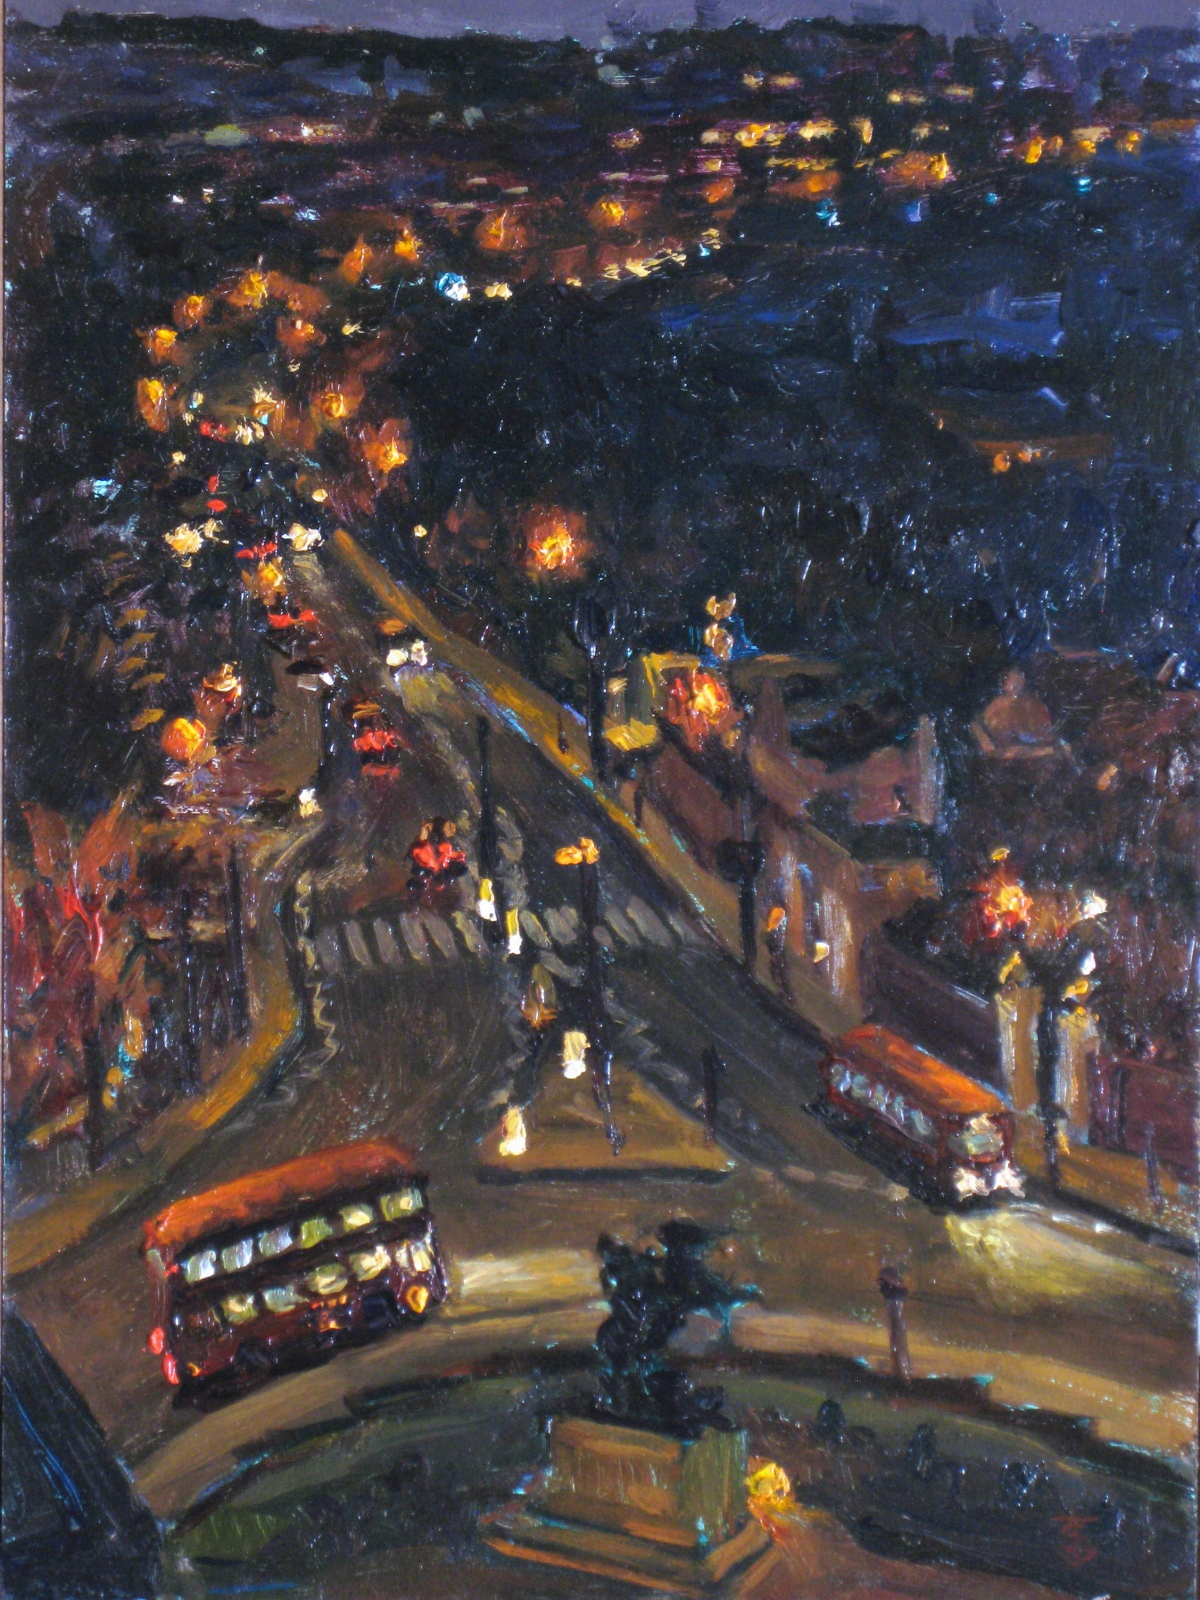 I traveled to London and Iceland with my Surreal Bounce colleague Robert Eringer, in search of the purity of the night sky, and found creativity and madness. I painted this painting looking out my window, Room 909, overlooking St. John's Wood, London. I captured the Double Decker Buse in the round about, which unfortunately no longer exist.   Round About Midnight 14x10 oil   Painting Status: Available for Purchase through James Main Fine Art, Santa Barbara, California. (805)637-8632